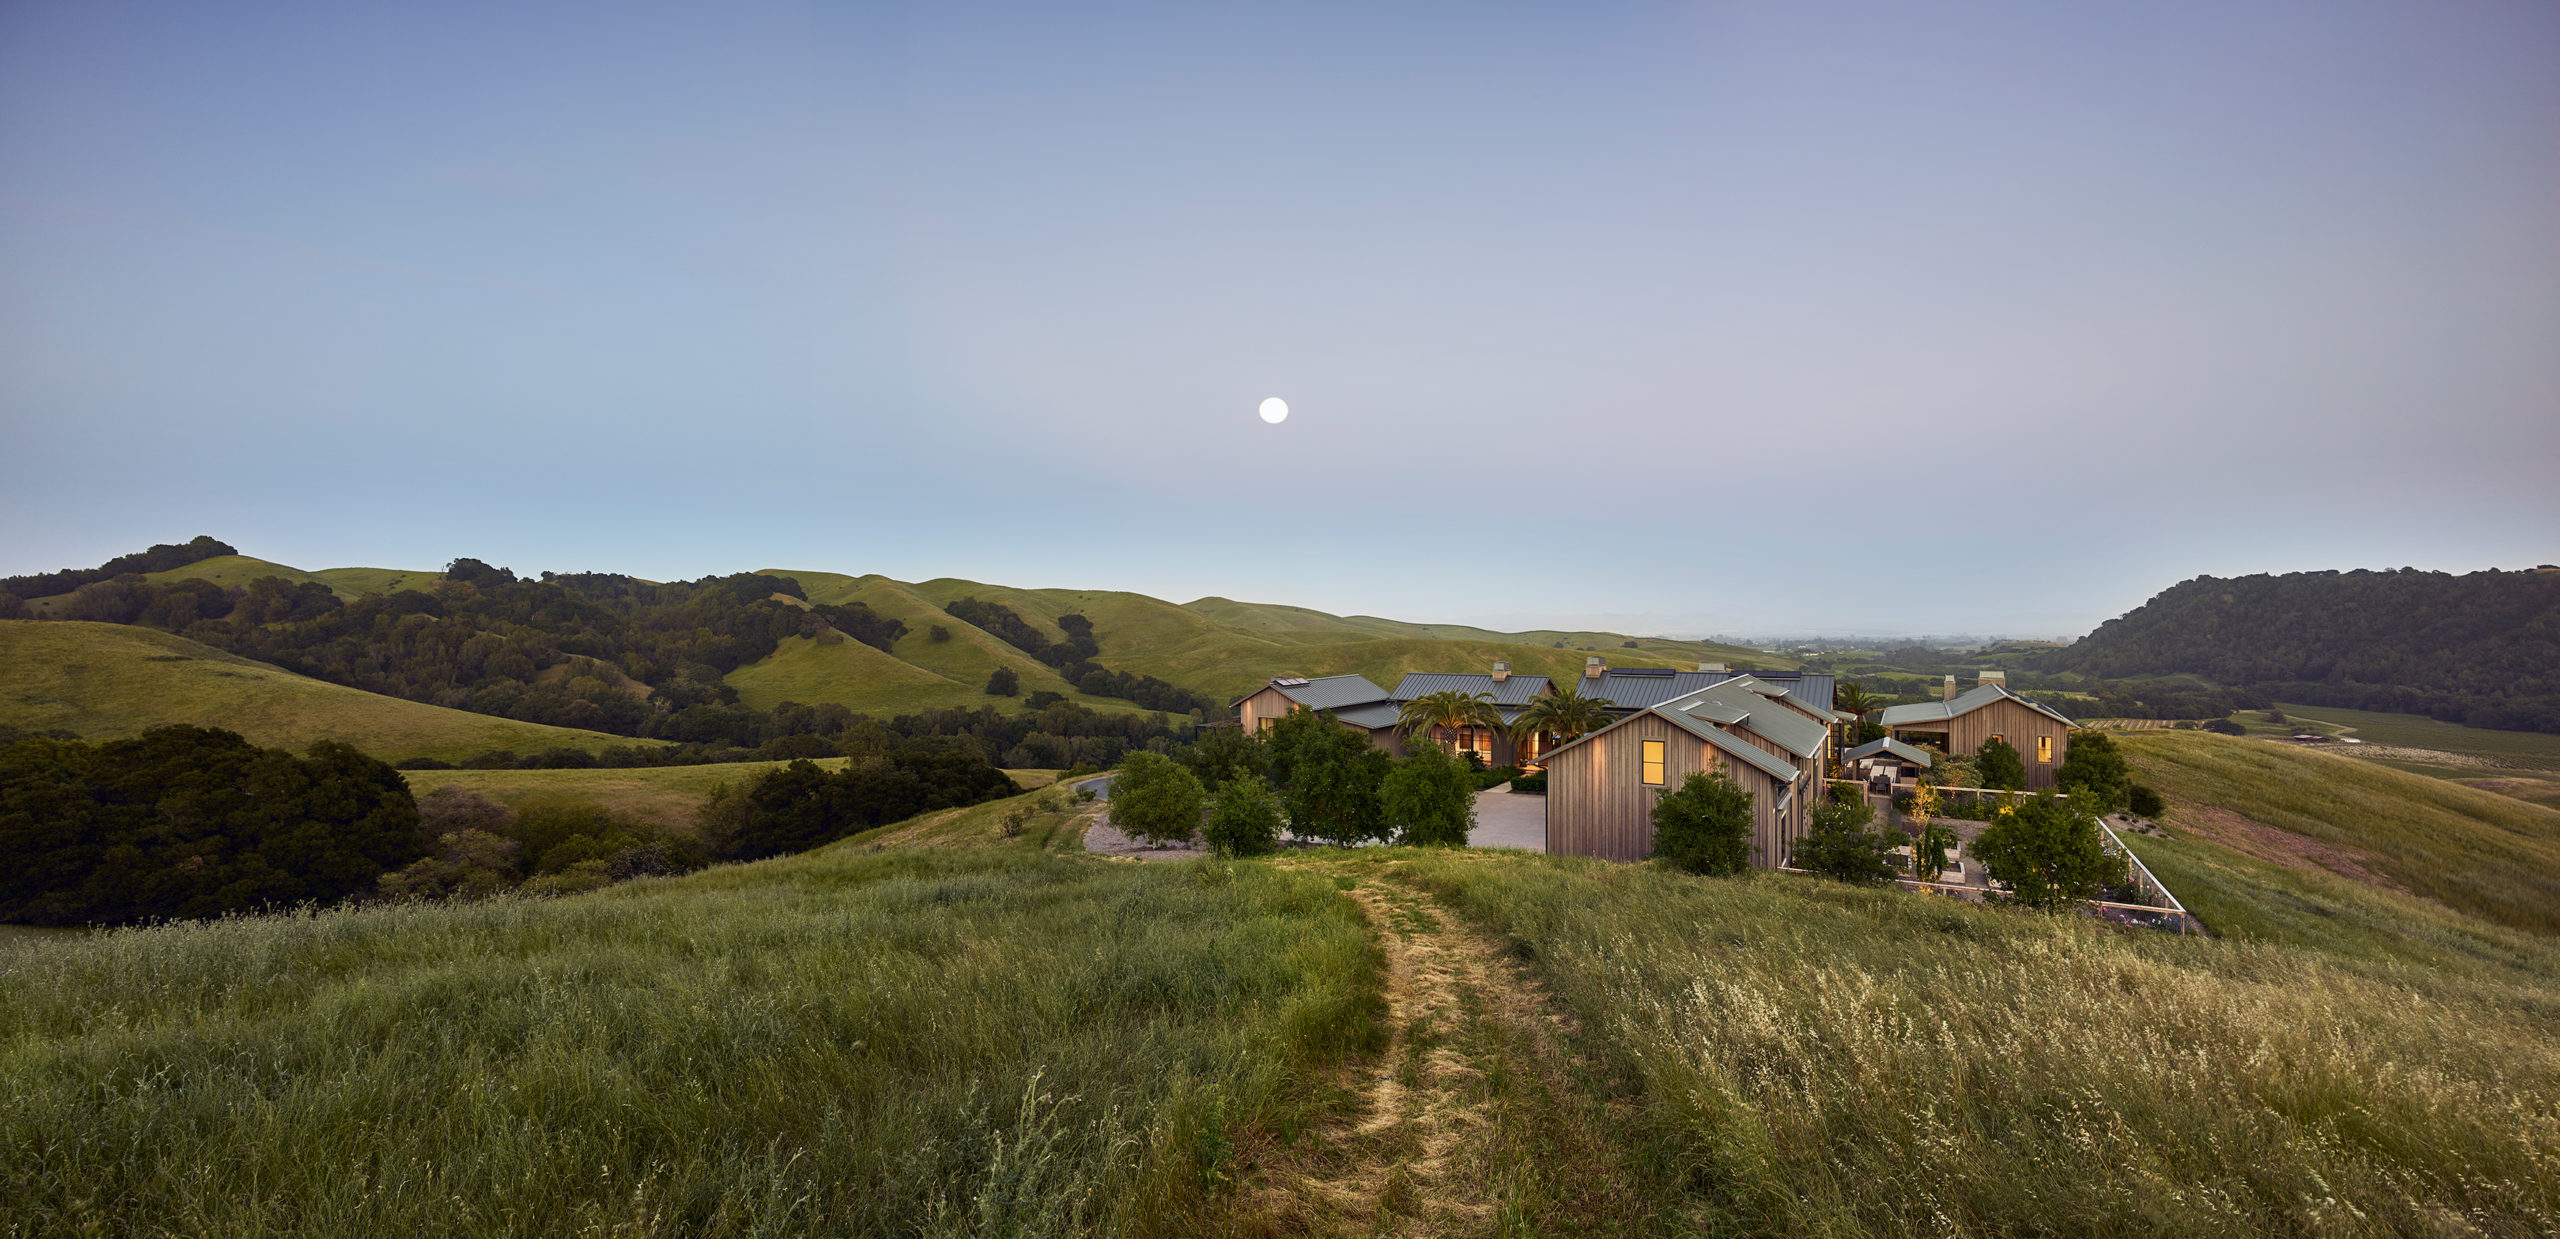 Jennifer_robins_interiors_projects_napa_valley_11_exterior_ext_house_mountainside